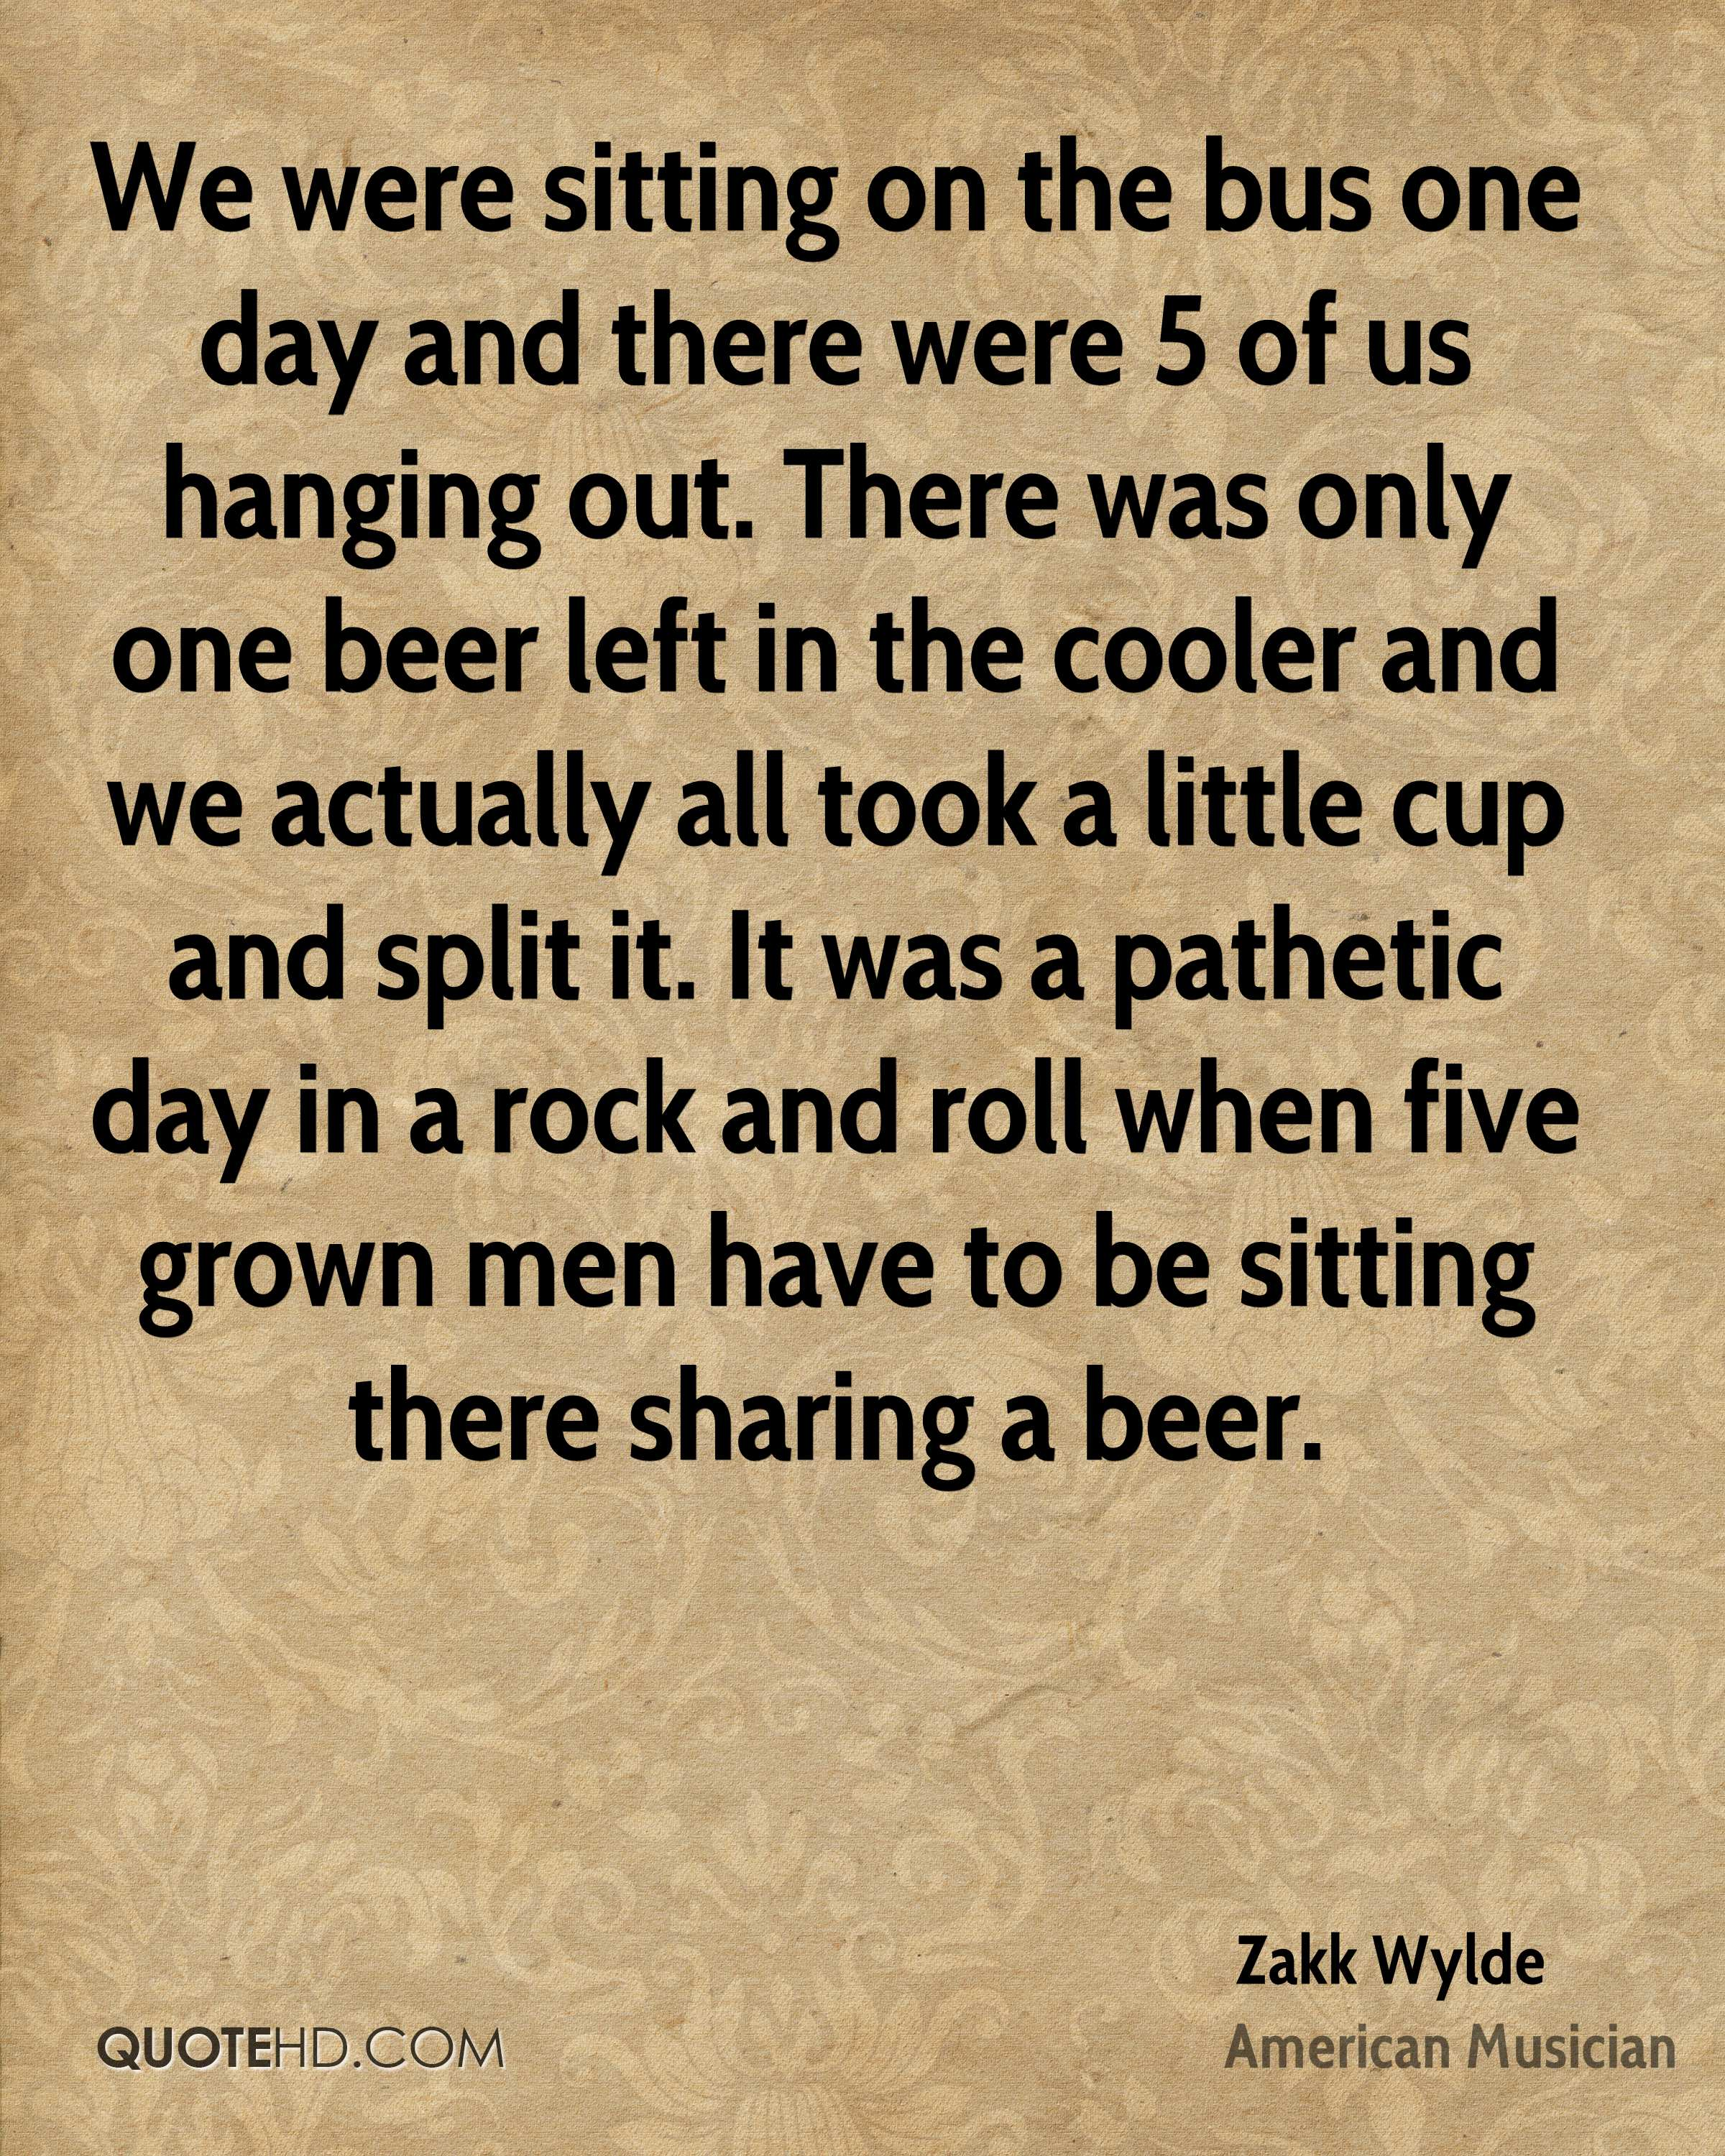 We were sitting on the bus one day and there were 5 of us hanging out. There was only one beer left in the cooler and we actually all took a little cup and split it. It was a pathetic day in a rock and roll when five grown men have to be sitting there sharing a beer.